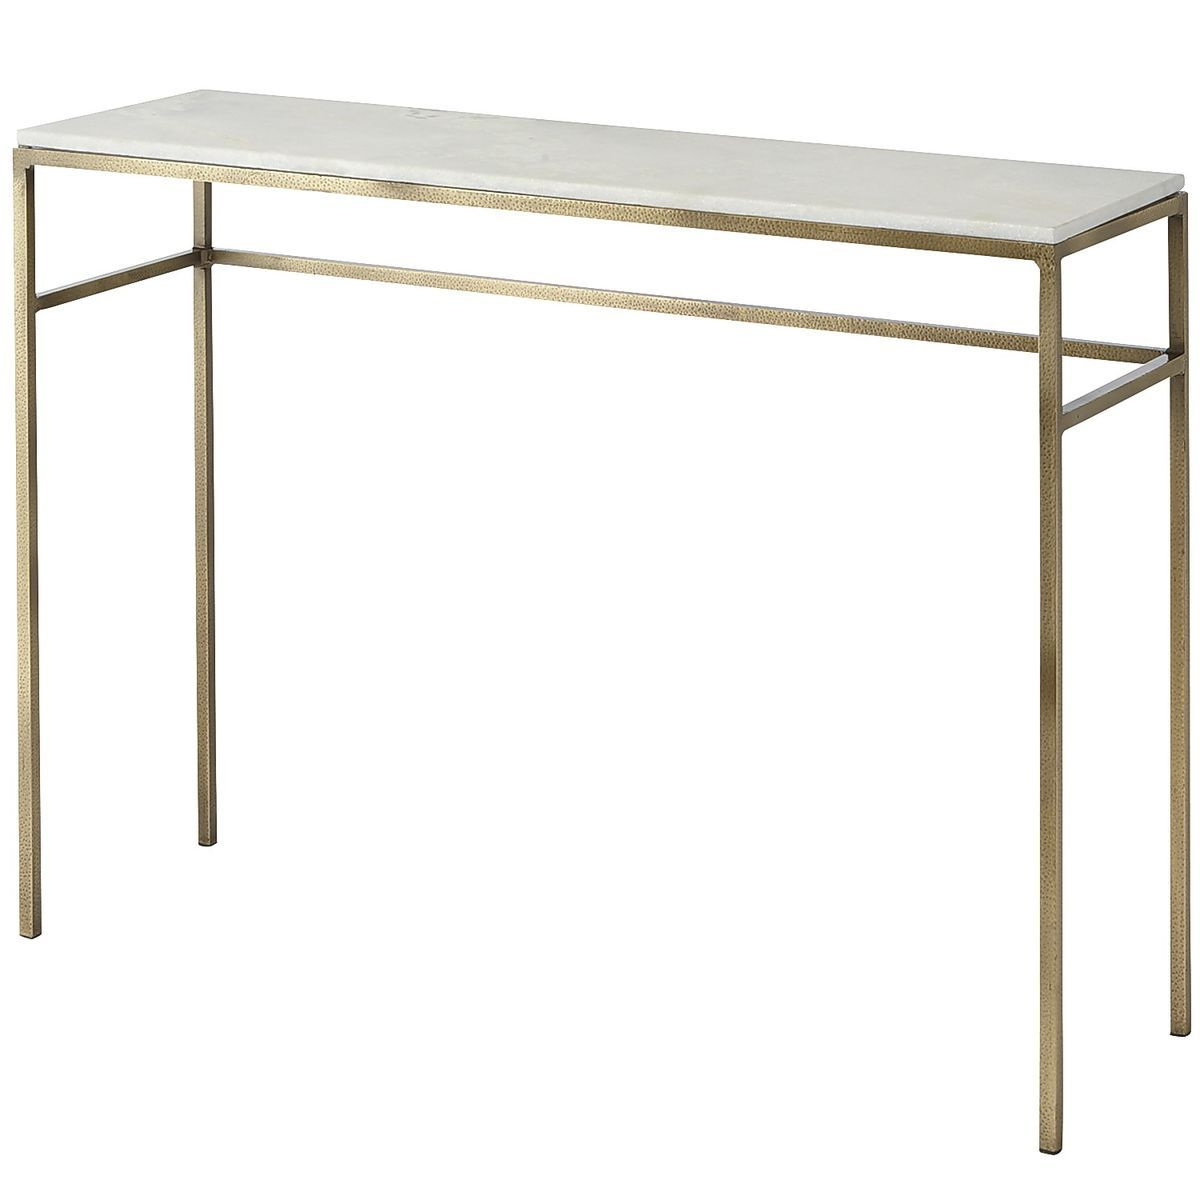 If You're Looking For A Way To Elevate Your Living Space, Ethel For Elke Marble Console Tables With Polished Aluminum Base (Gallery 9 of 20)